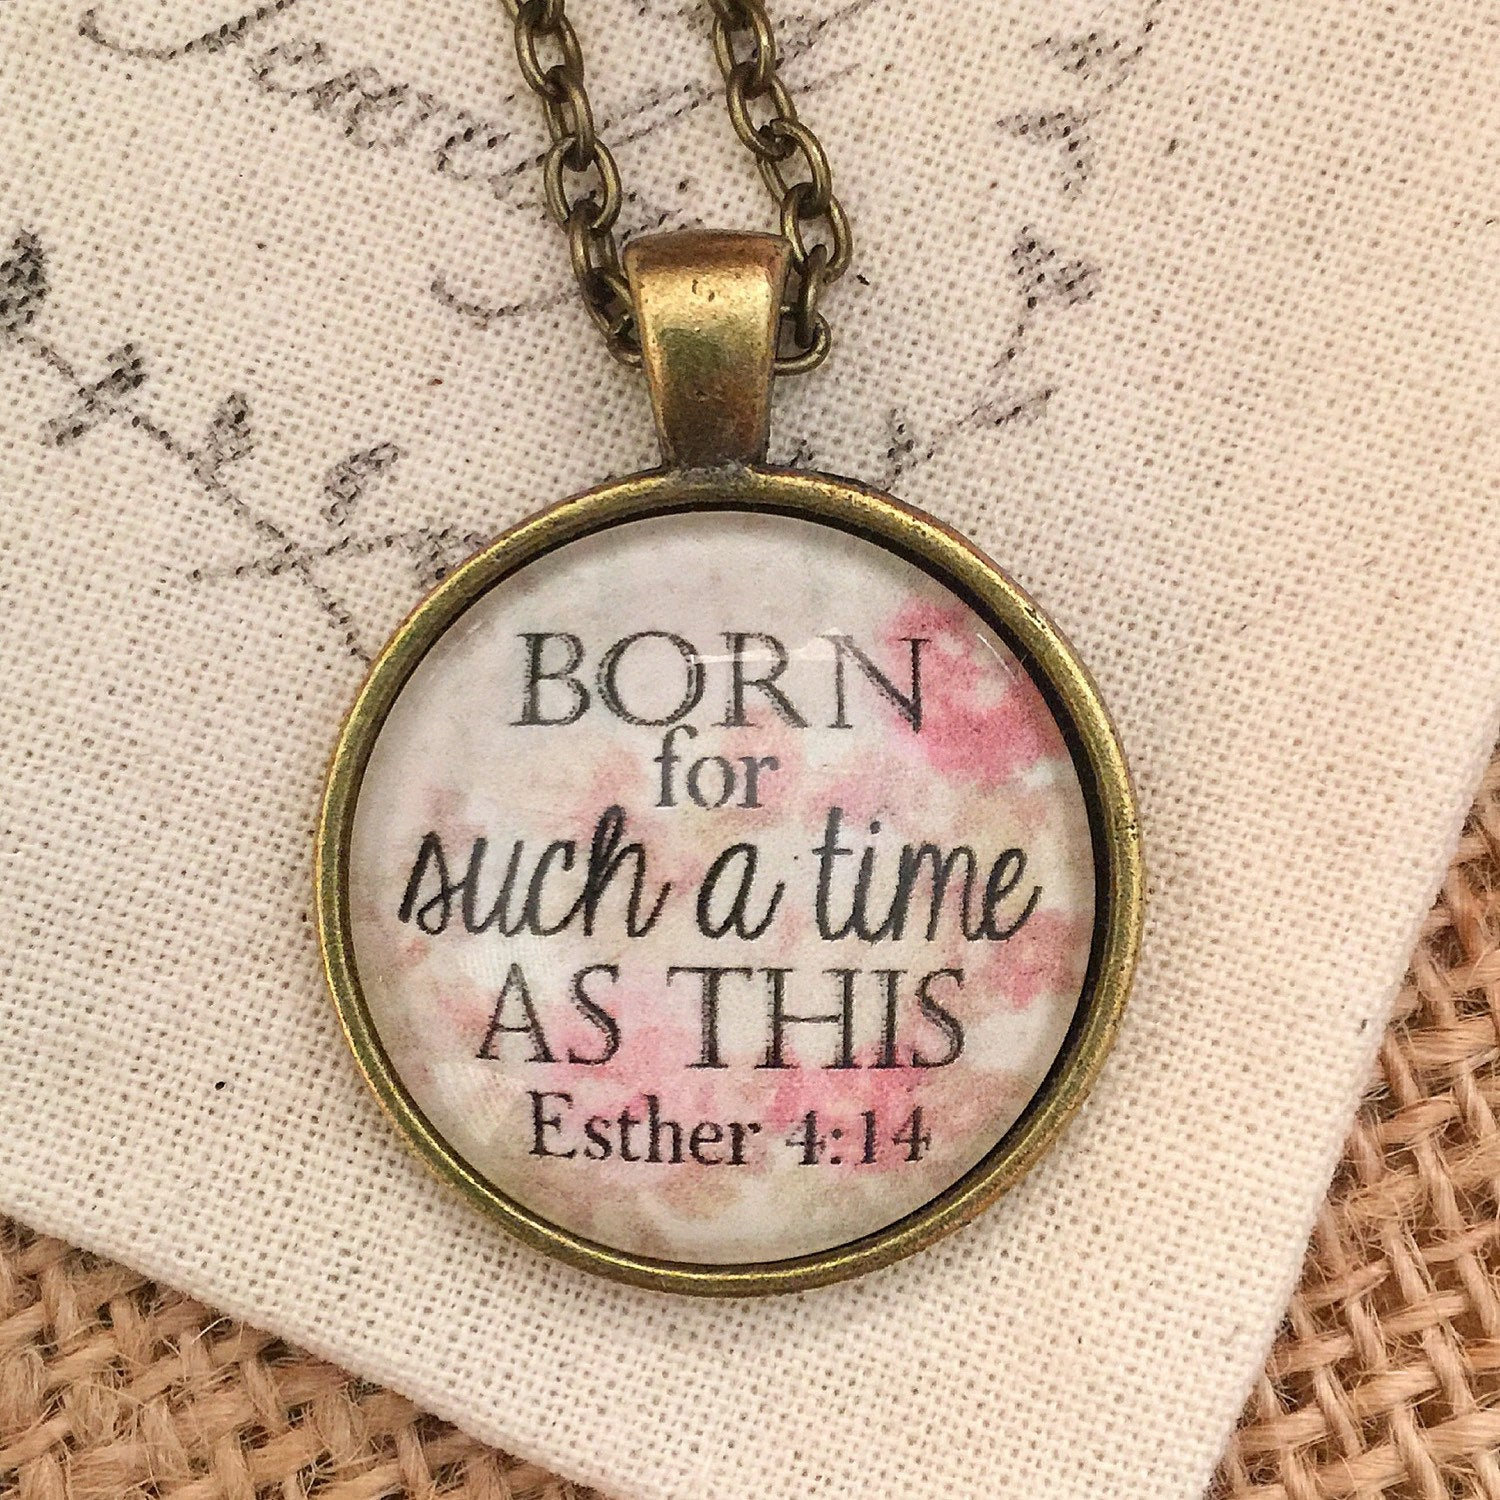 Born for Such a Time as This Esther 4:14 pendant necklace - Redeemed Jewelry